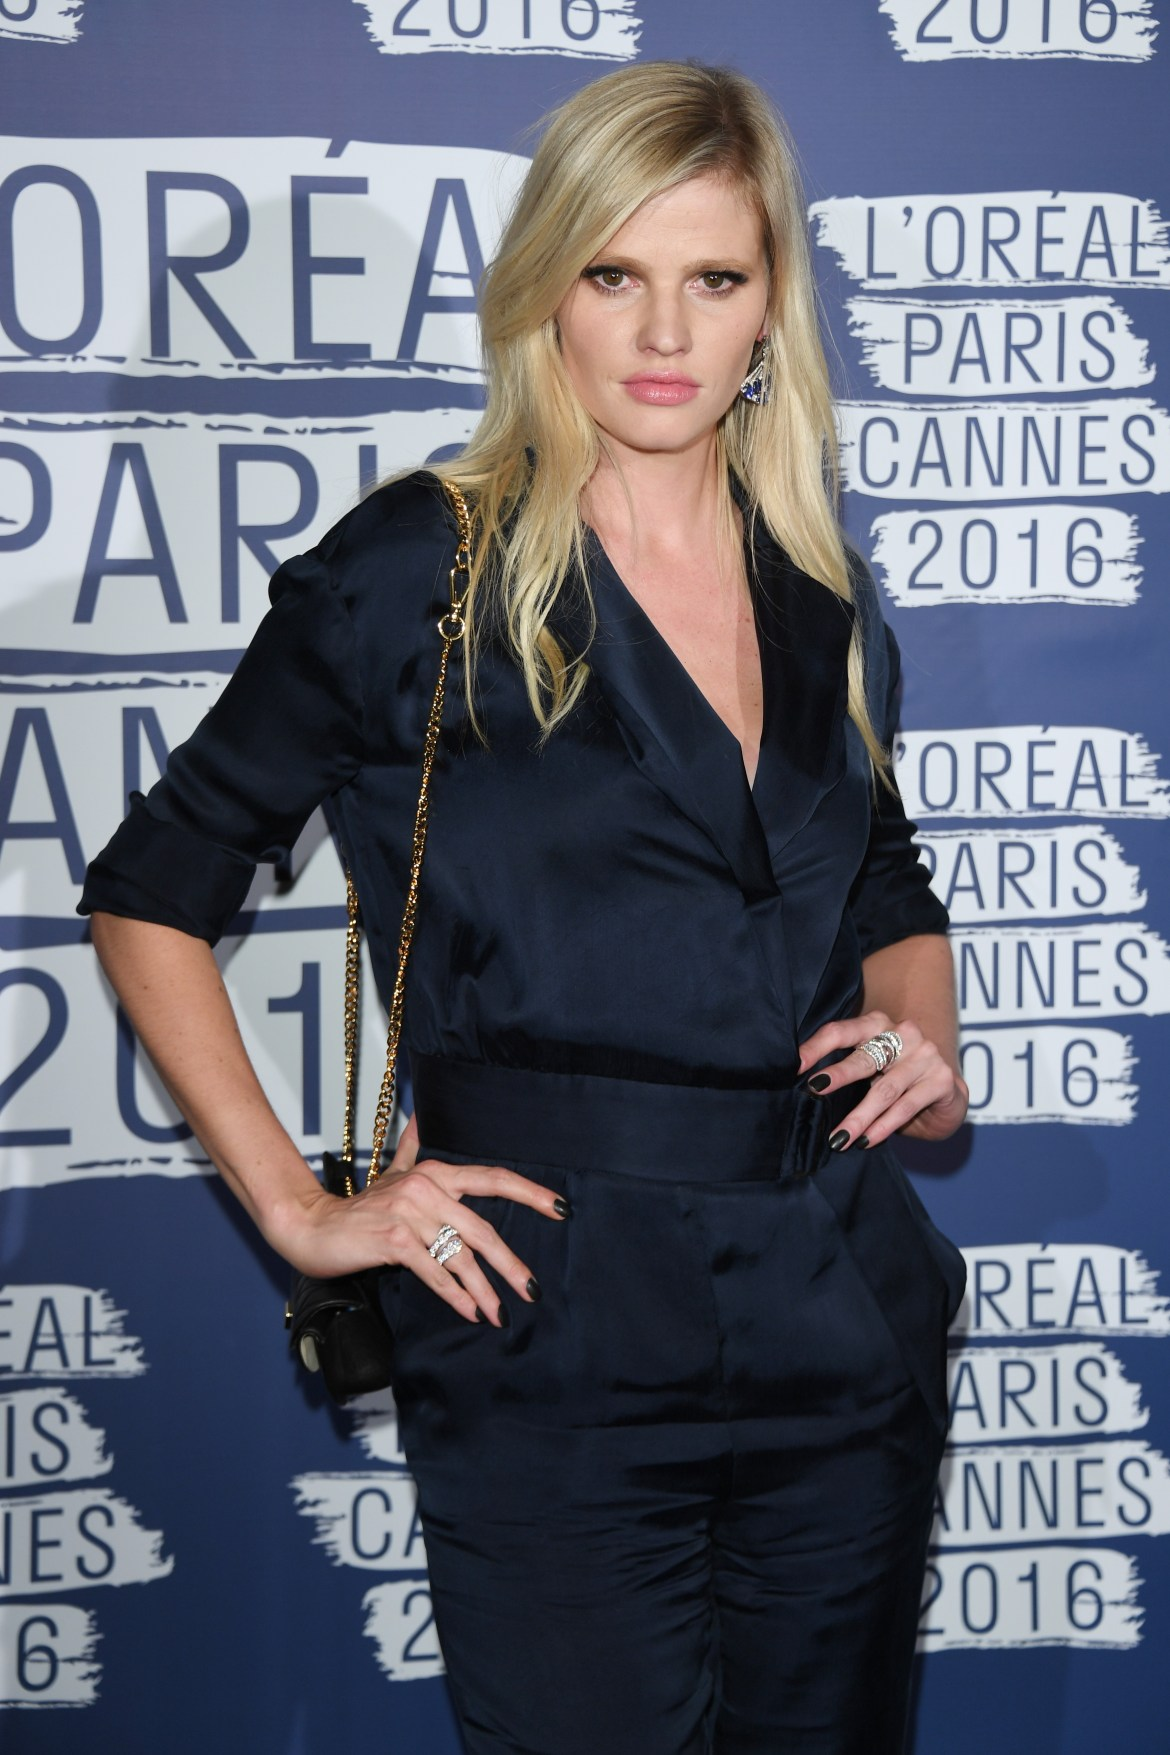 CANNES, FRANCE - MAY 18: Lara Stone attends the L'Oreal Party during the annual 69th Cannes Film Festival at on May 18, 2016 in Cannes, France. (Photo by Venturelli/WireImage)